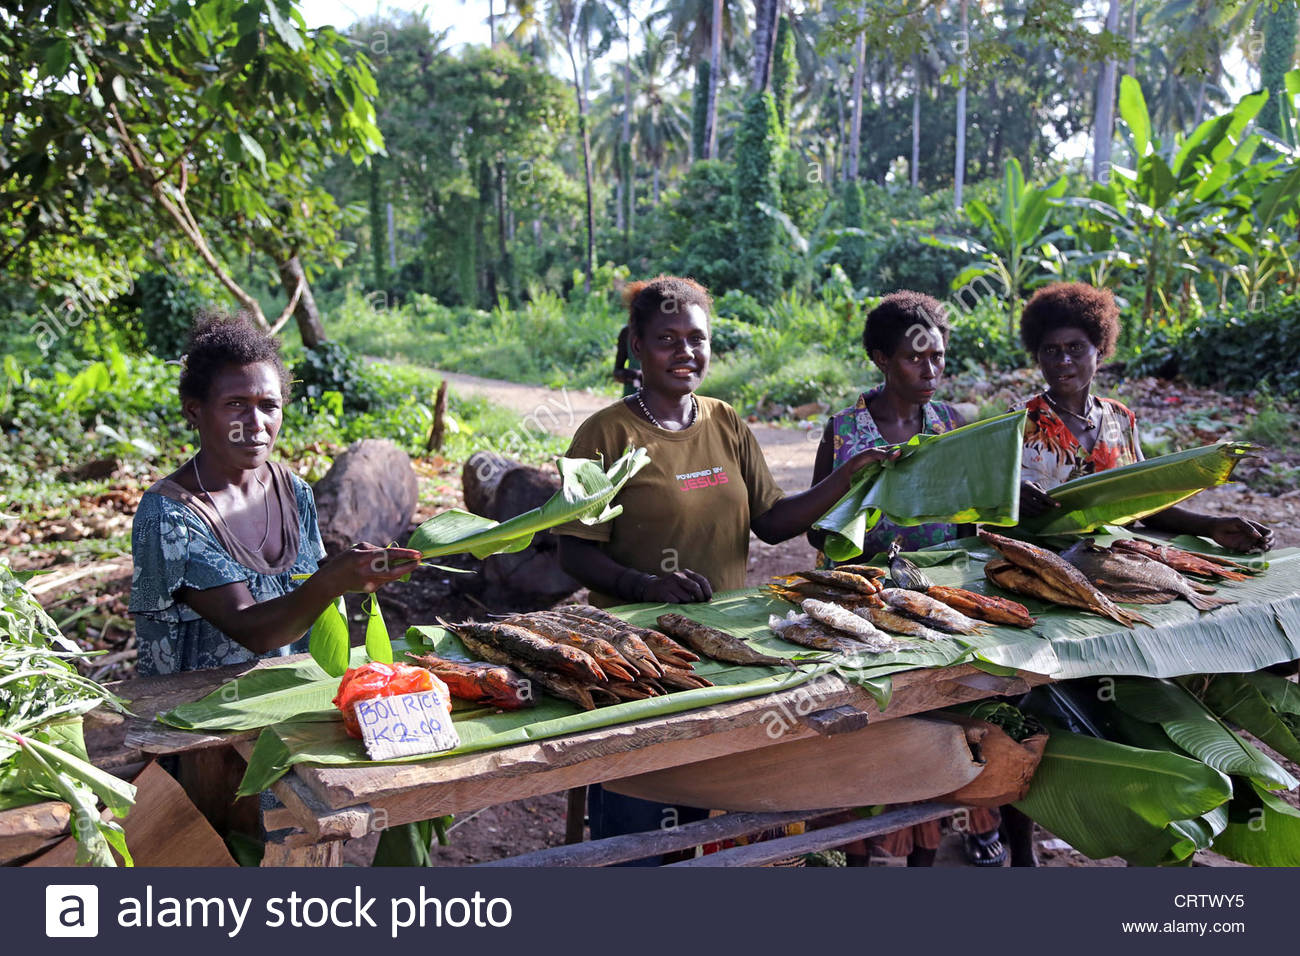 women wave flies of the fishes, market stall on the road to Arawa.